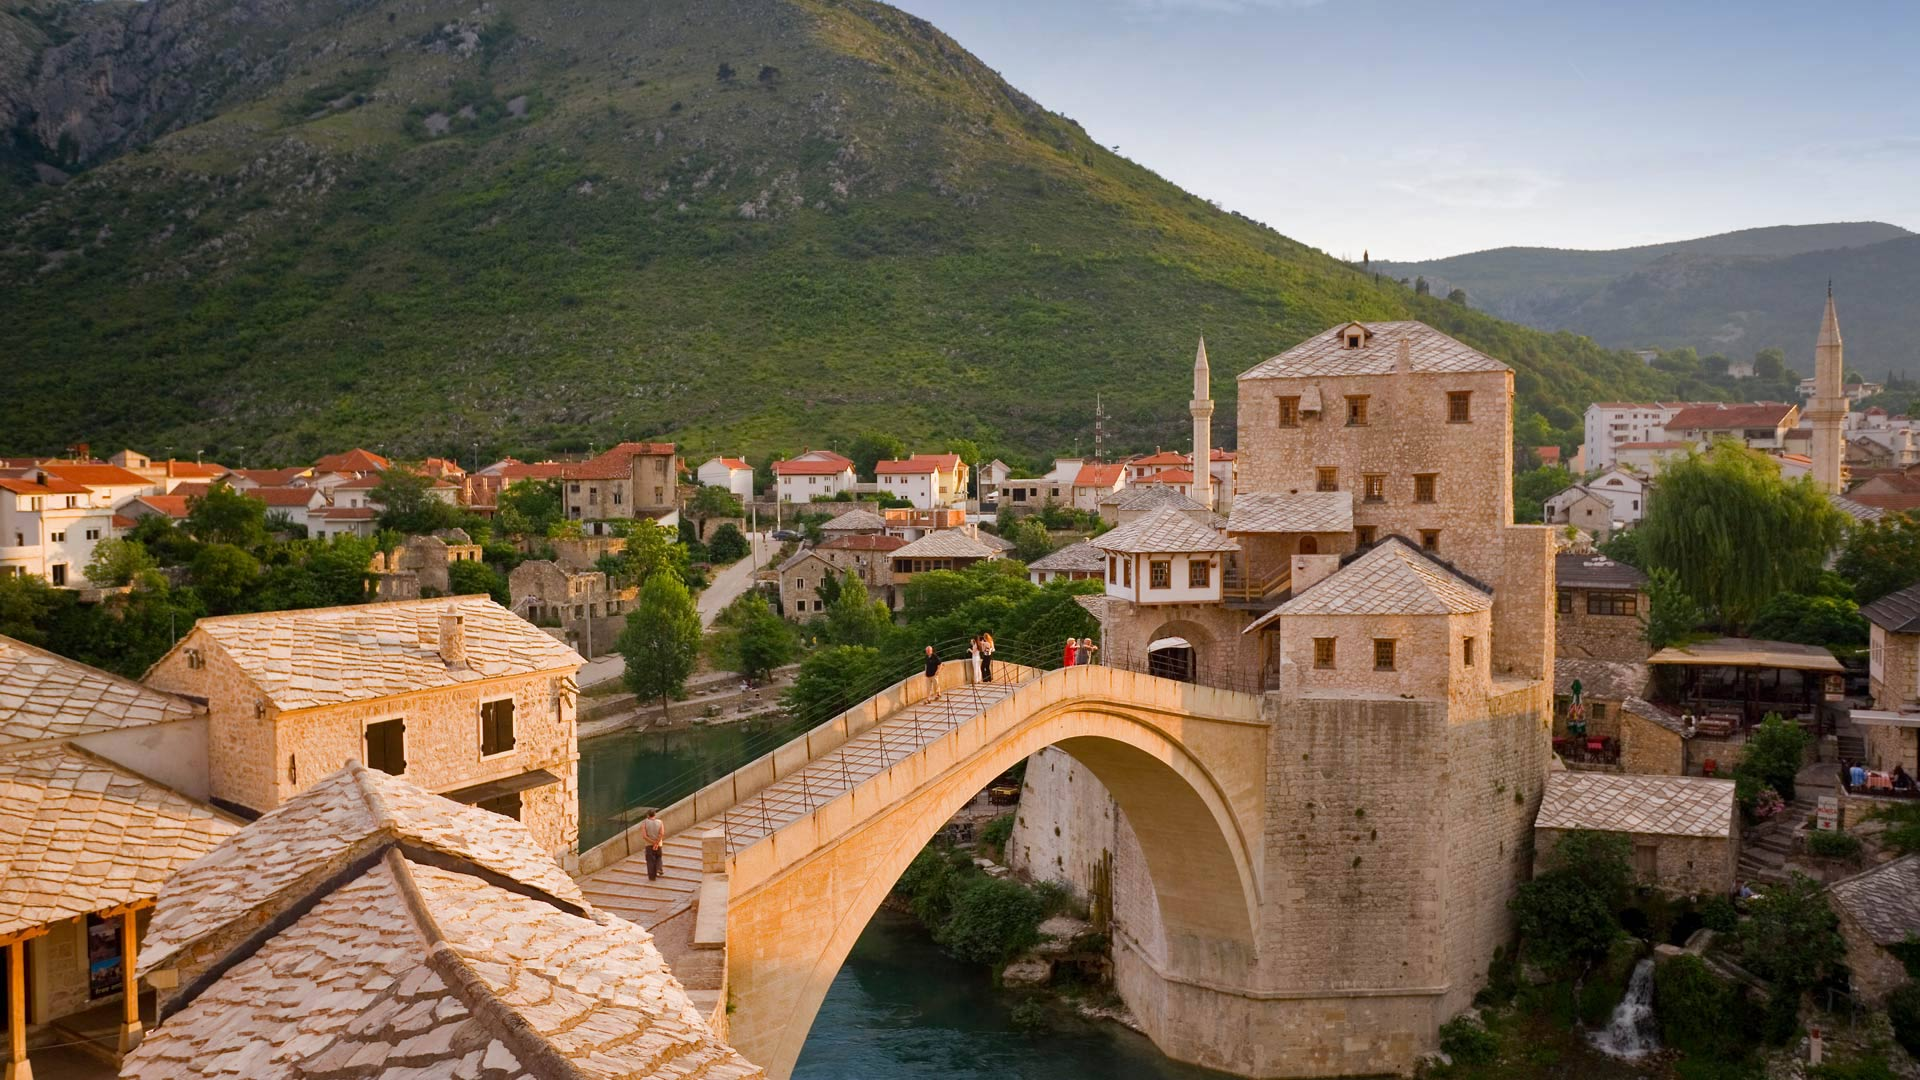 Stari Most in Mostar, Bosnia and Herzegovina (© Gavin Hellier/Minden Pictures)